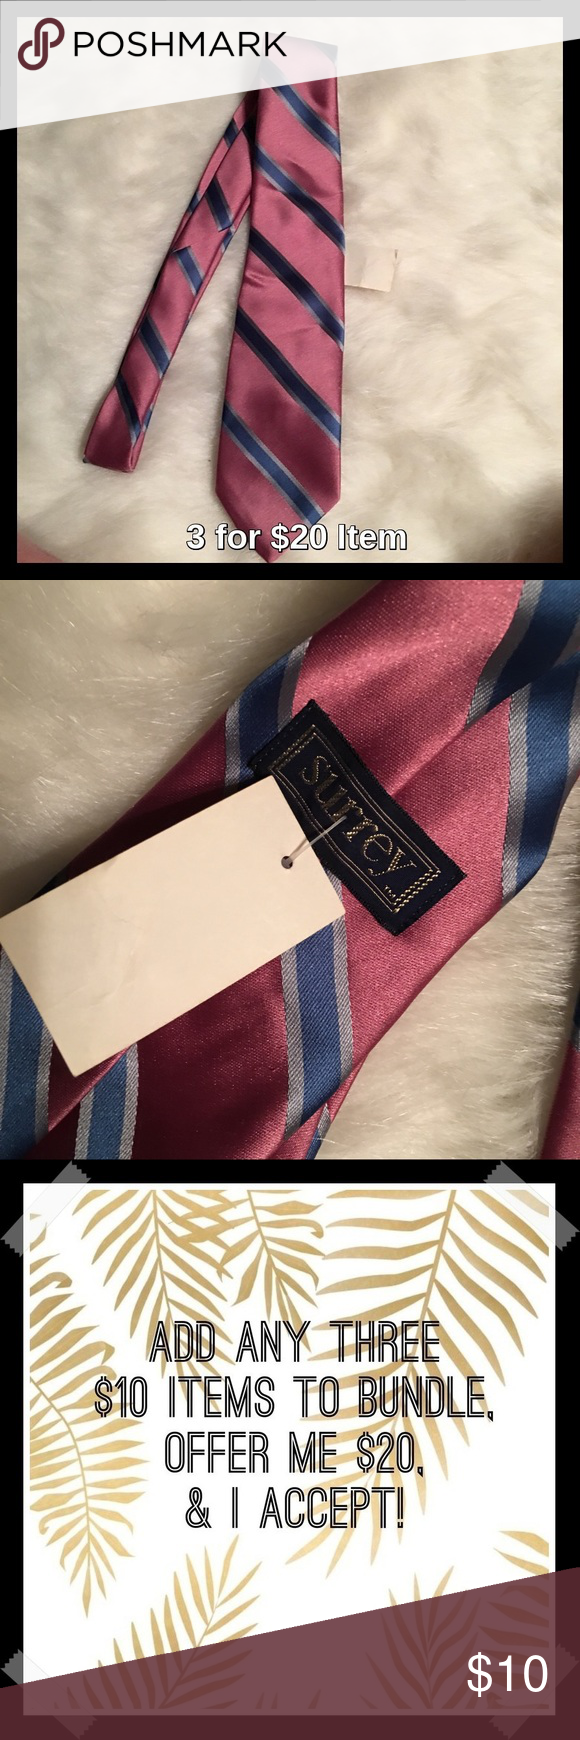 Surrey Red, Blue and Grey Striped Tie Sale! Price firm unless 3 for $20 bundled. Tie is reddish with blue and grey stripes. Surrey Accessories Ties